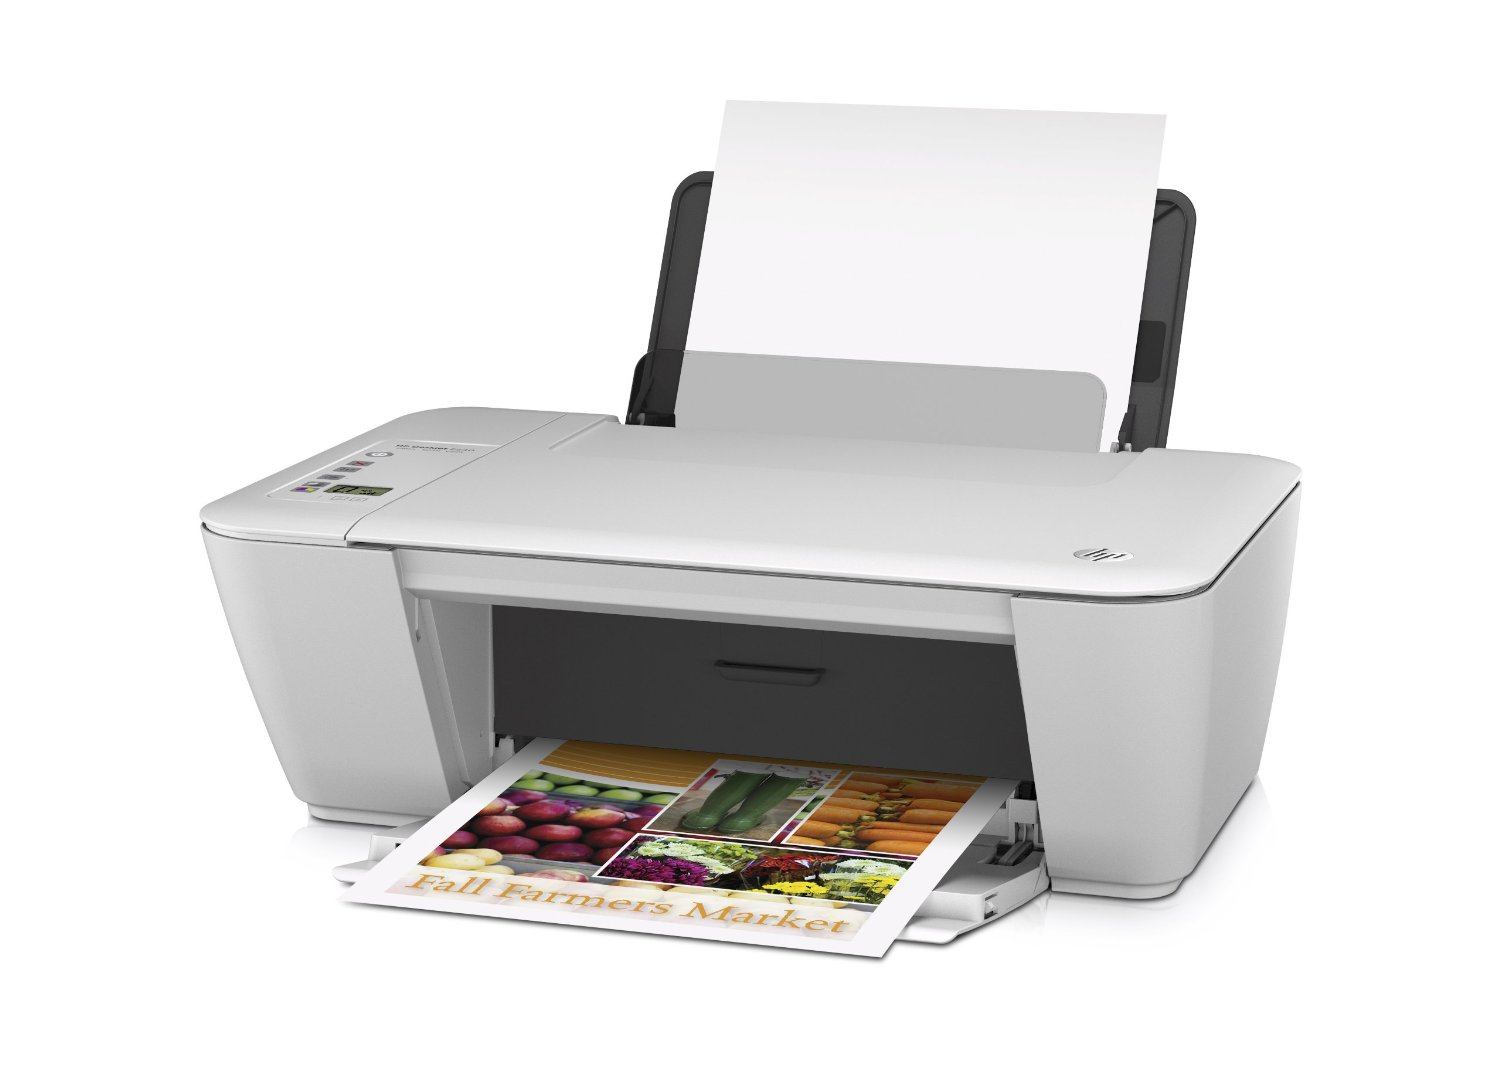 HP Deskjet 2540 All-in-One Printer with Airprint For Tablet Smartphone & Computer   Rapid PCs